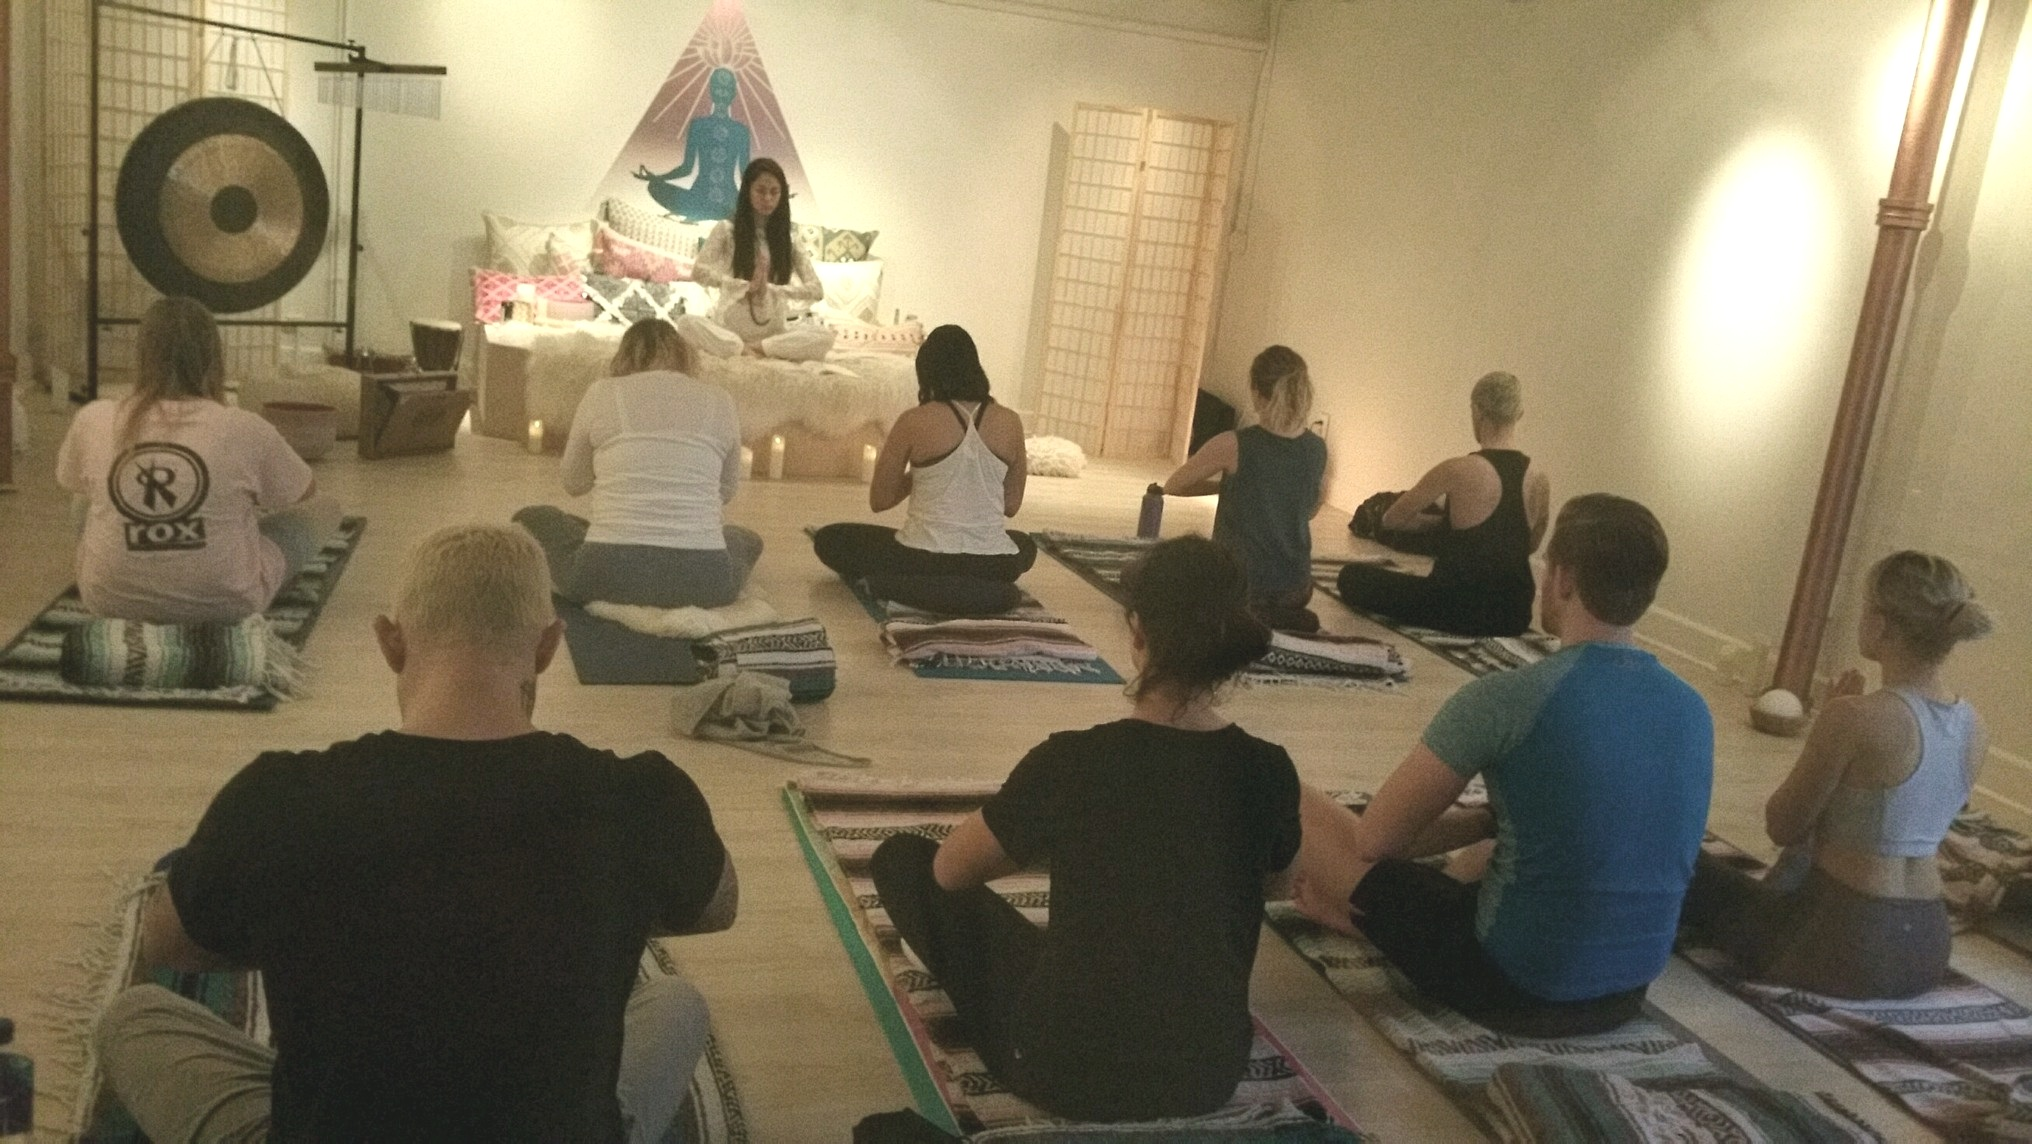 CLASSES - My purpose is to uplift and awaken your consciousness. Here you'll find my weekly schedule of upcoming kundalini yoga and meditation classes.We connect through community and intention. Wherever you are in the world, local or far, an offering will have you in mind.